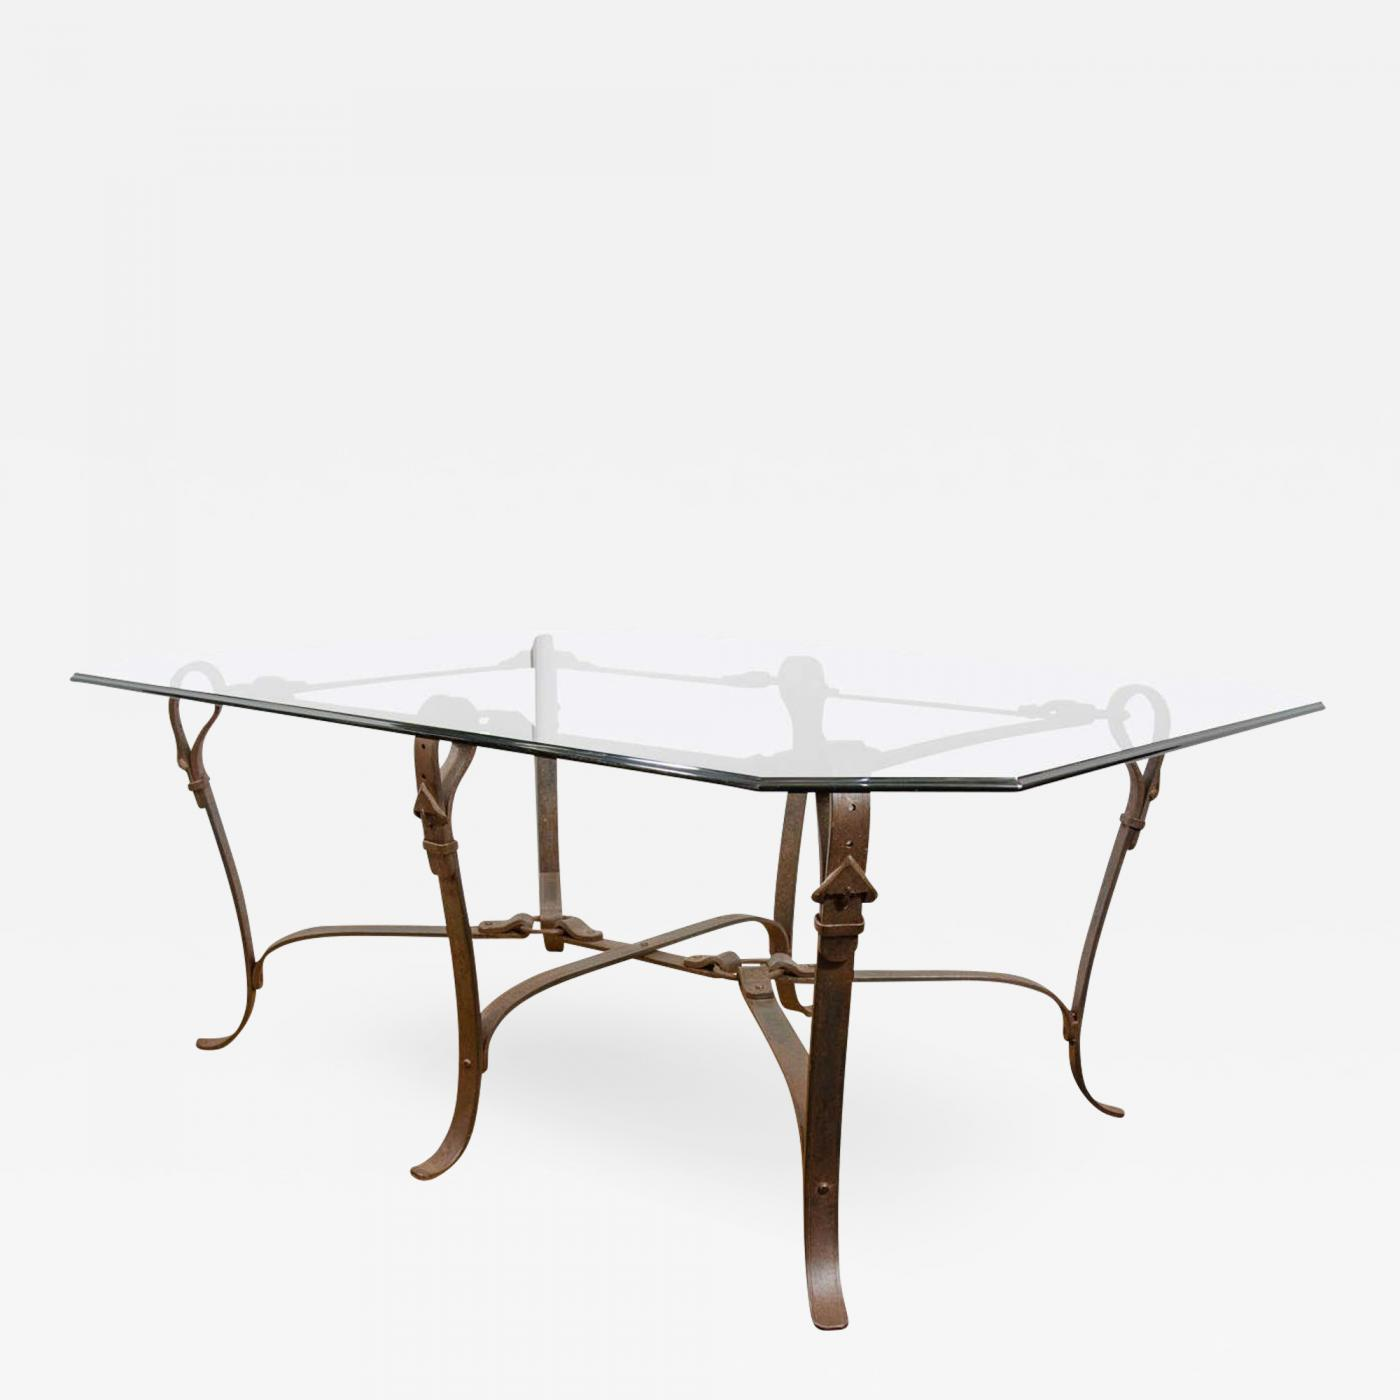 Gucci Stunning Modernist Gucci Influenced Equestrian HandForged - Gucci coffee table